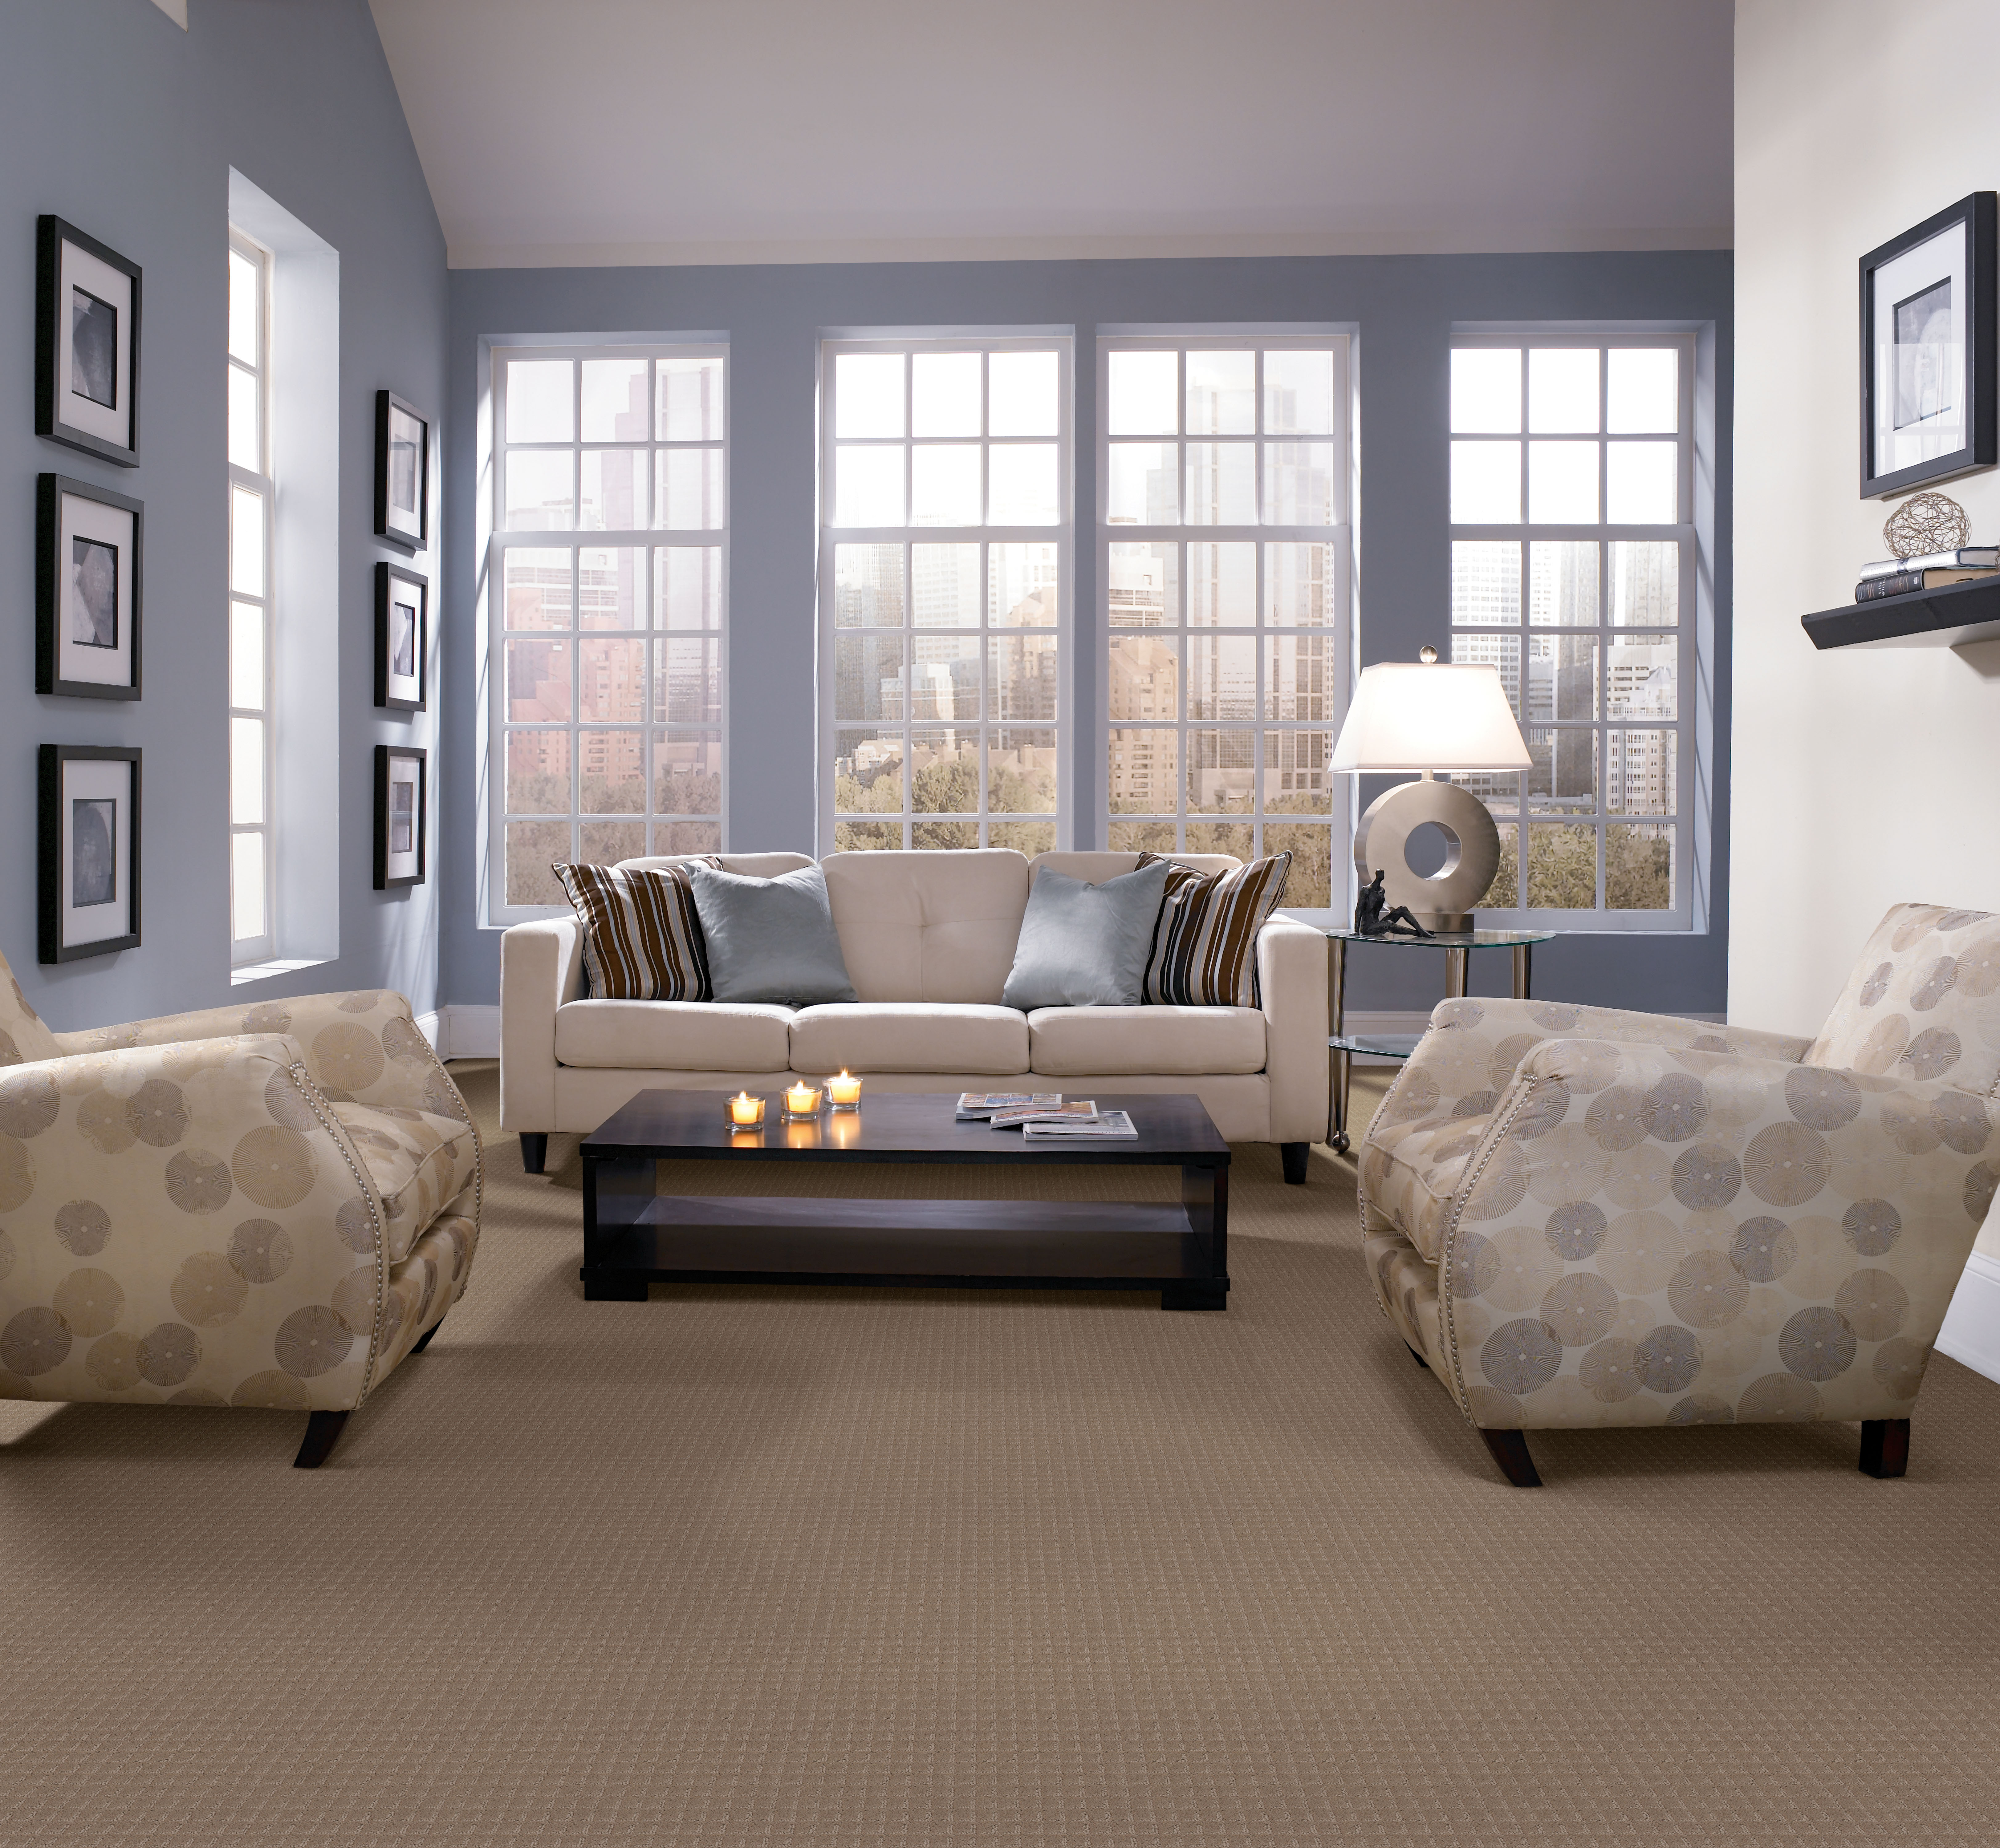 Carpet Jeopardy 10 Fun And Interesting Facts About Carpet Georgia Carpet Industries Inc Flooring Tips And Tricks